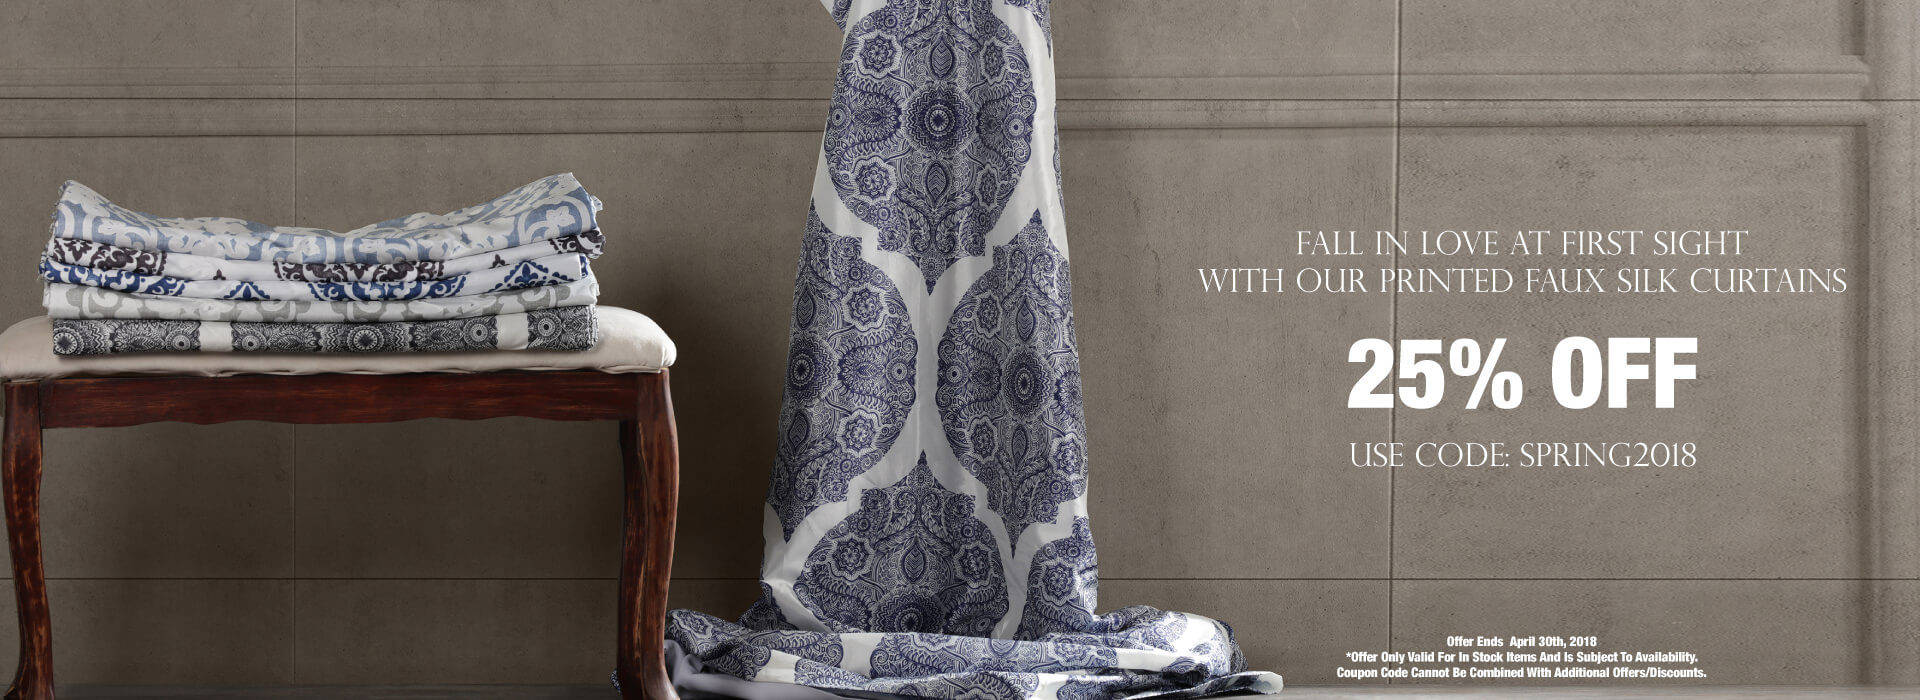 Printed Faux Silk Curtains - 25% OFF